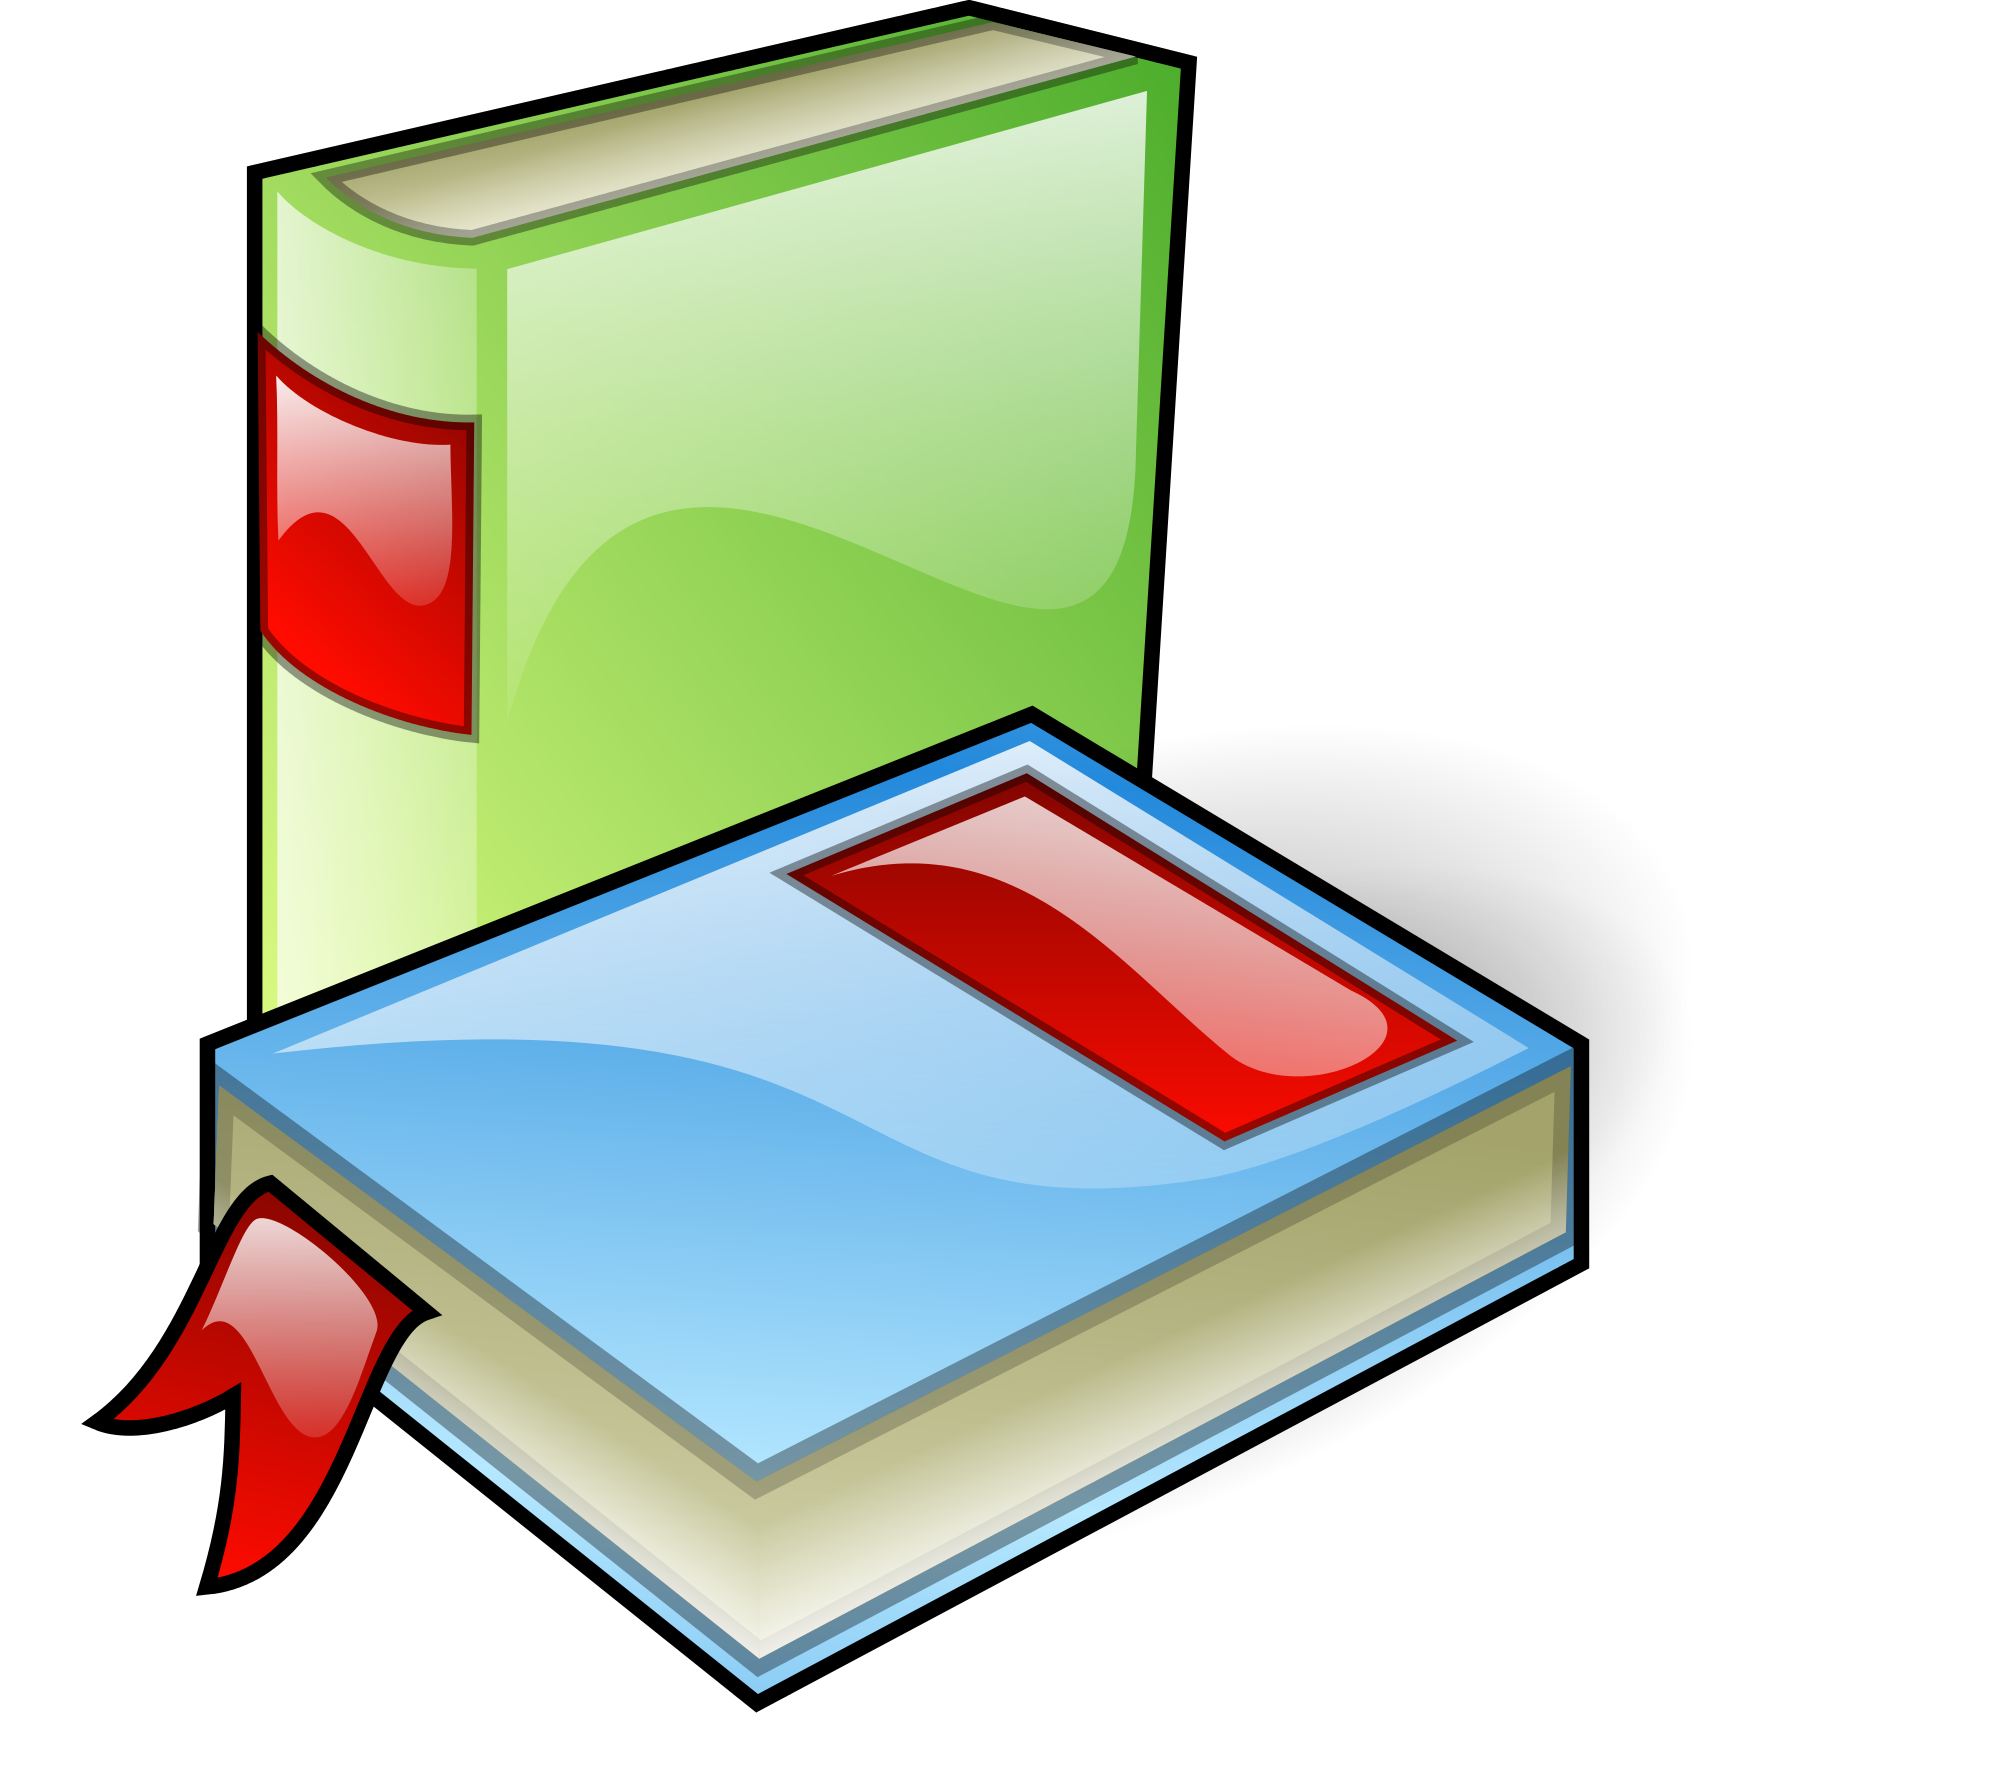 Book clipart icon clipart library stock File:Books-aj.svg aj ashton 01.svg - Wikimedia Commons clipart library stock